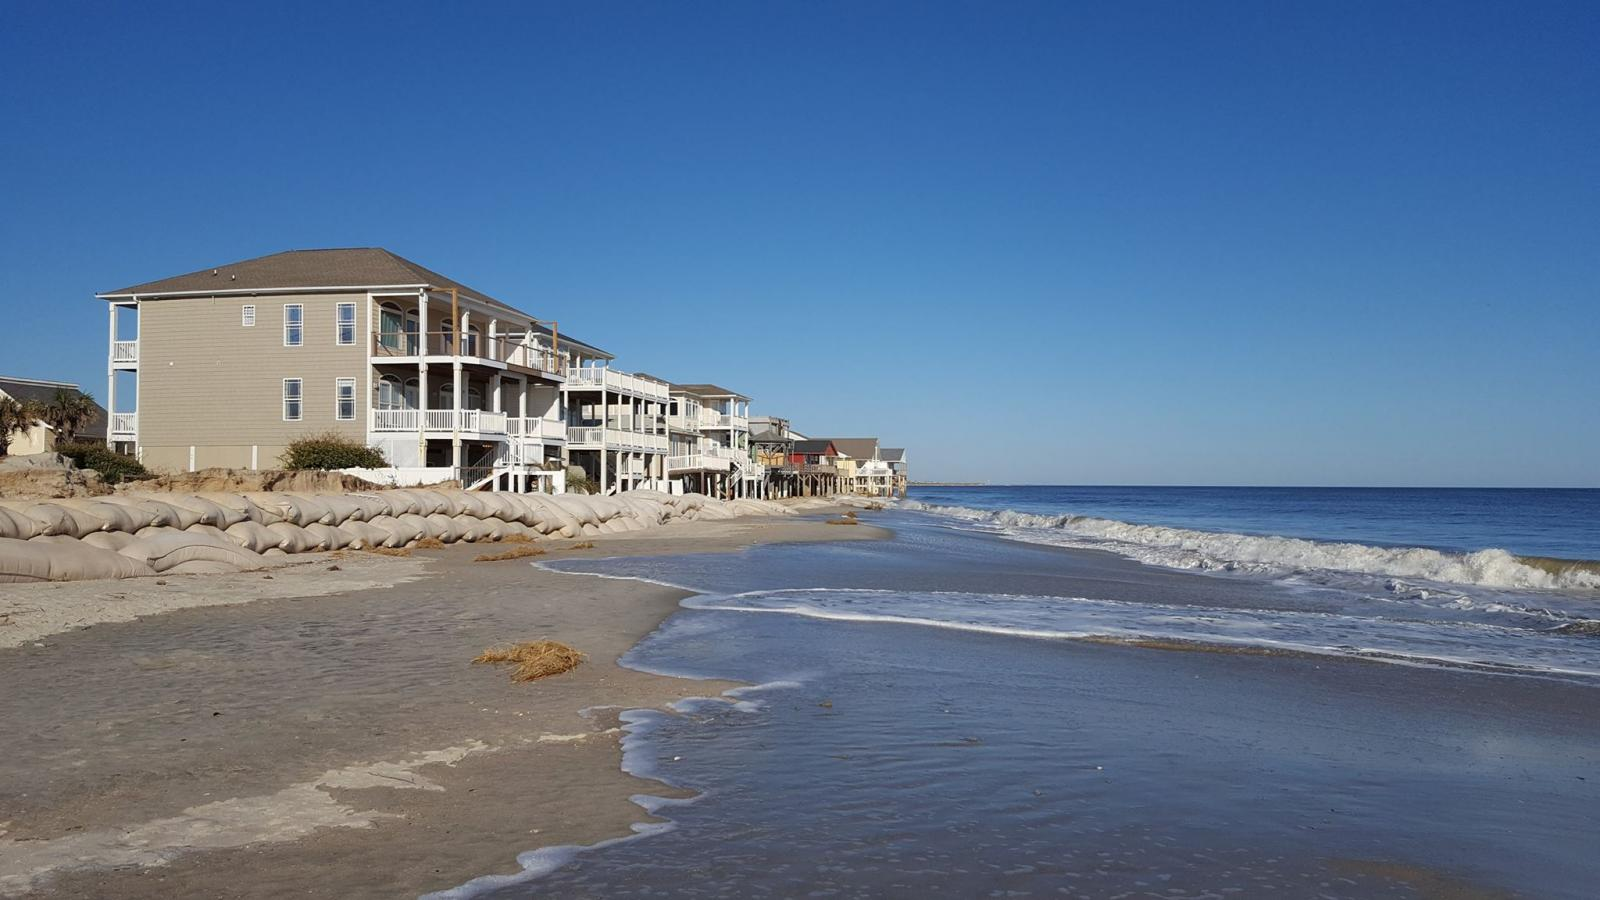 Hurricane Matthew accelerated ongoing beach erosion along the eastern end of Oak Island, NC.  In the past there were two additional rows of streets and beach houses at this location; Hurricane Hazel (1954) destroyed the first row and Hurricane Hugo (1989) destroyed the second.